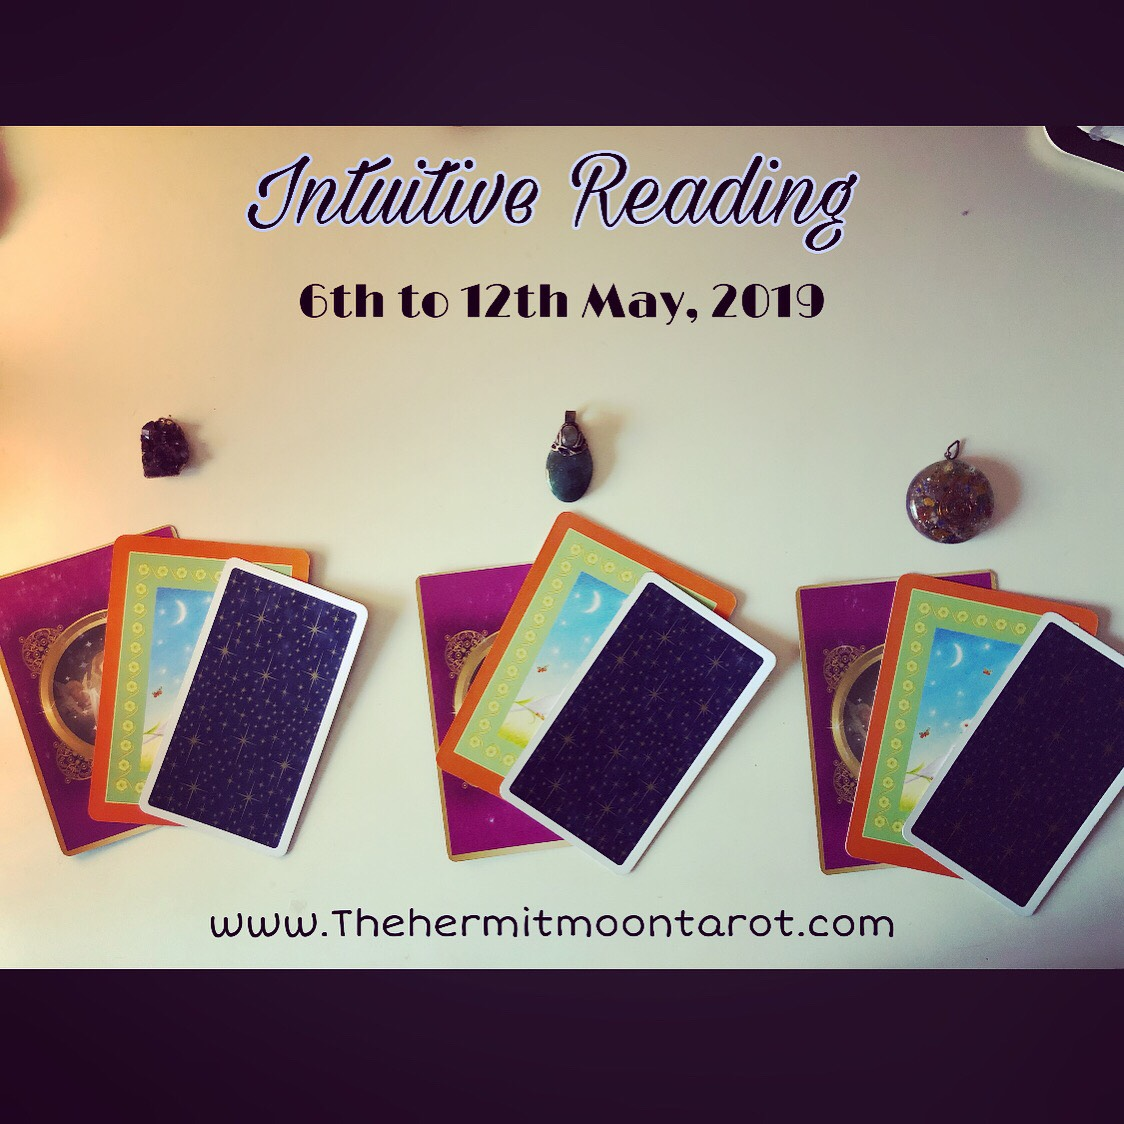 Intuitive Reading for the week of 6th to 12th May, 2019